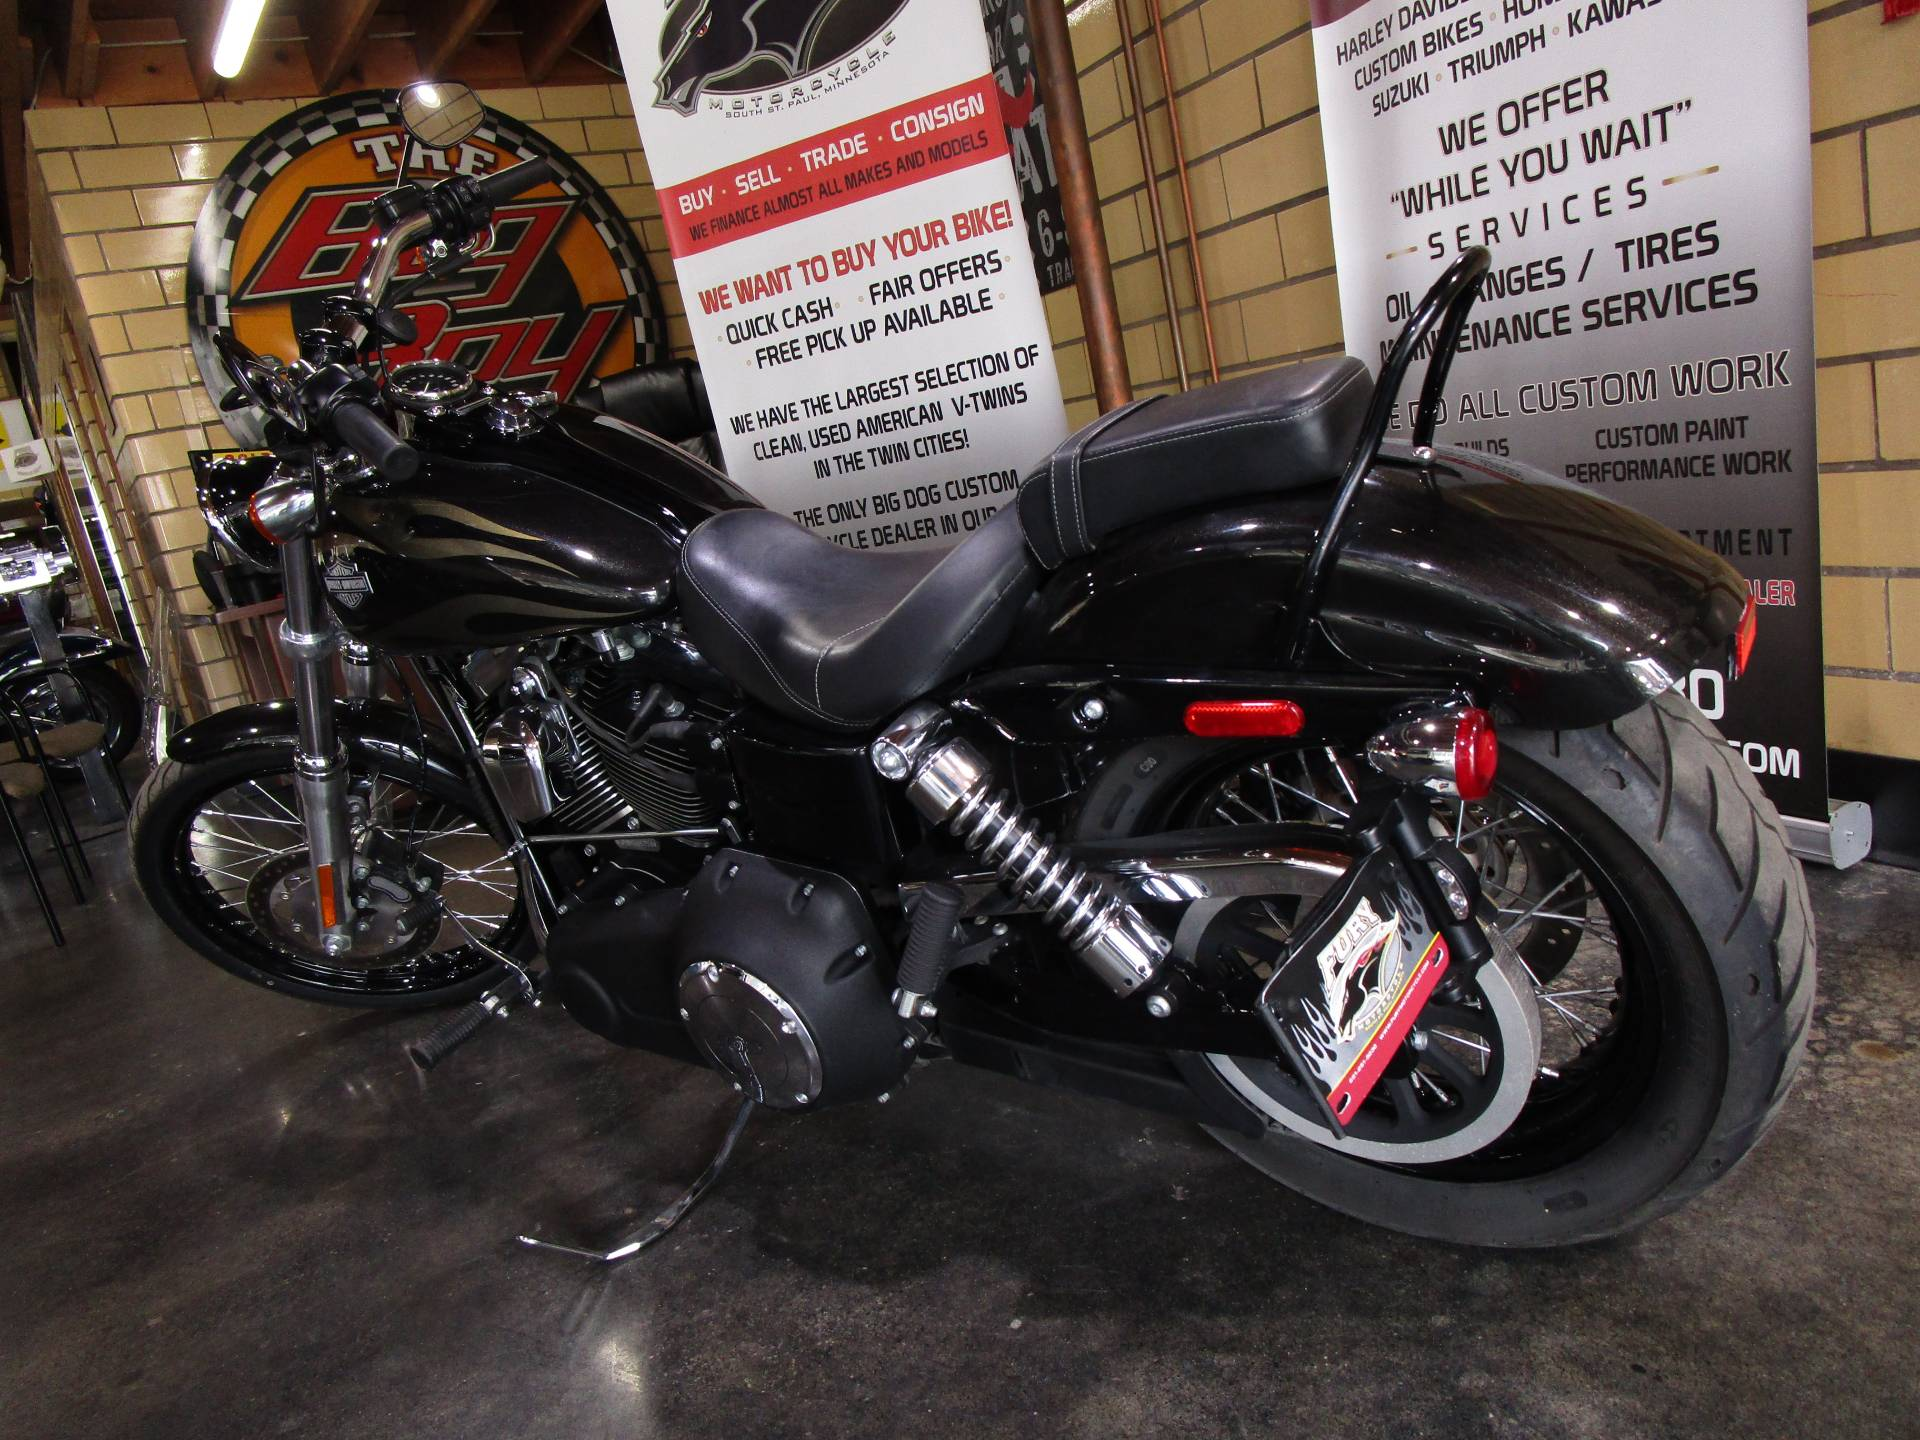 2017 Harley-Davidson Wide Glide in South Saint Paul, Minnesota - Photo 12